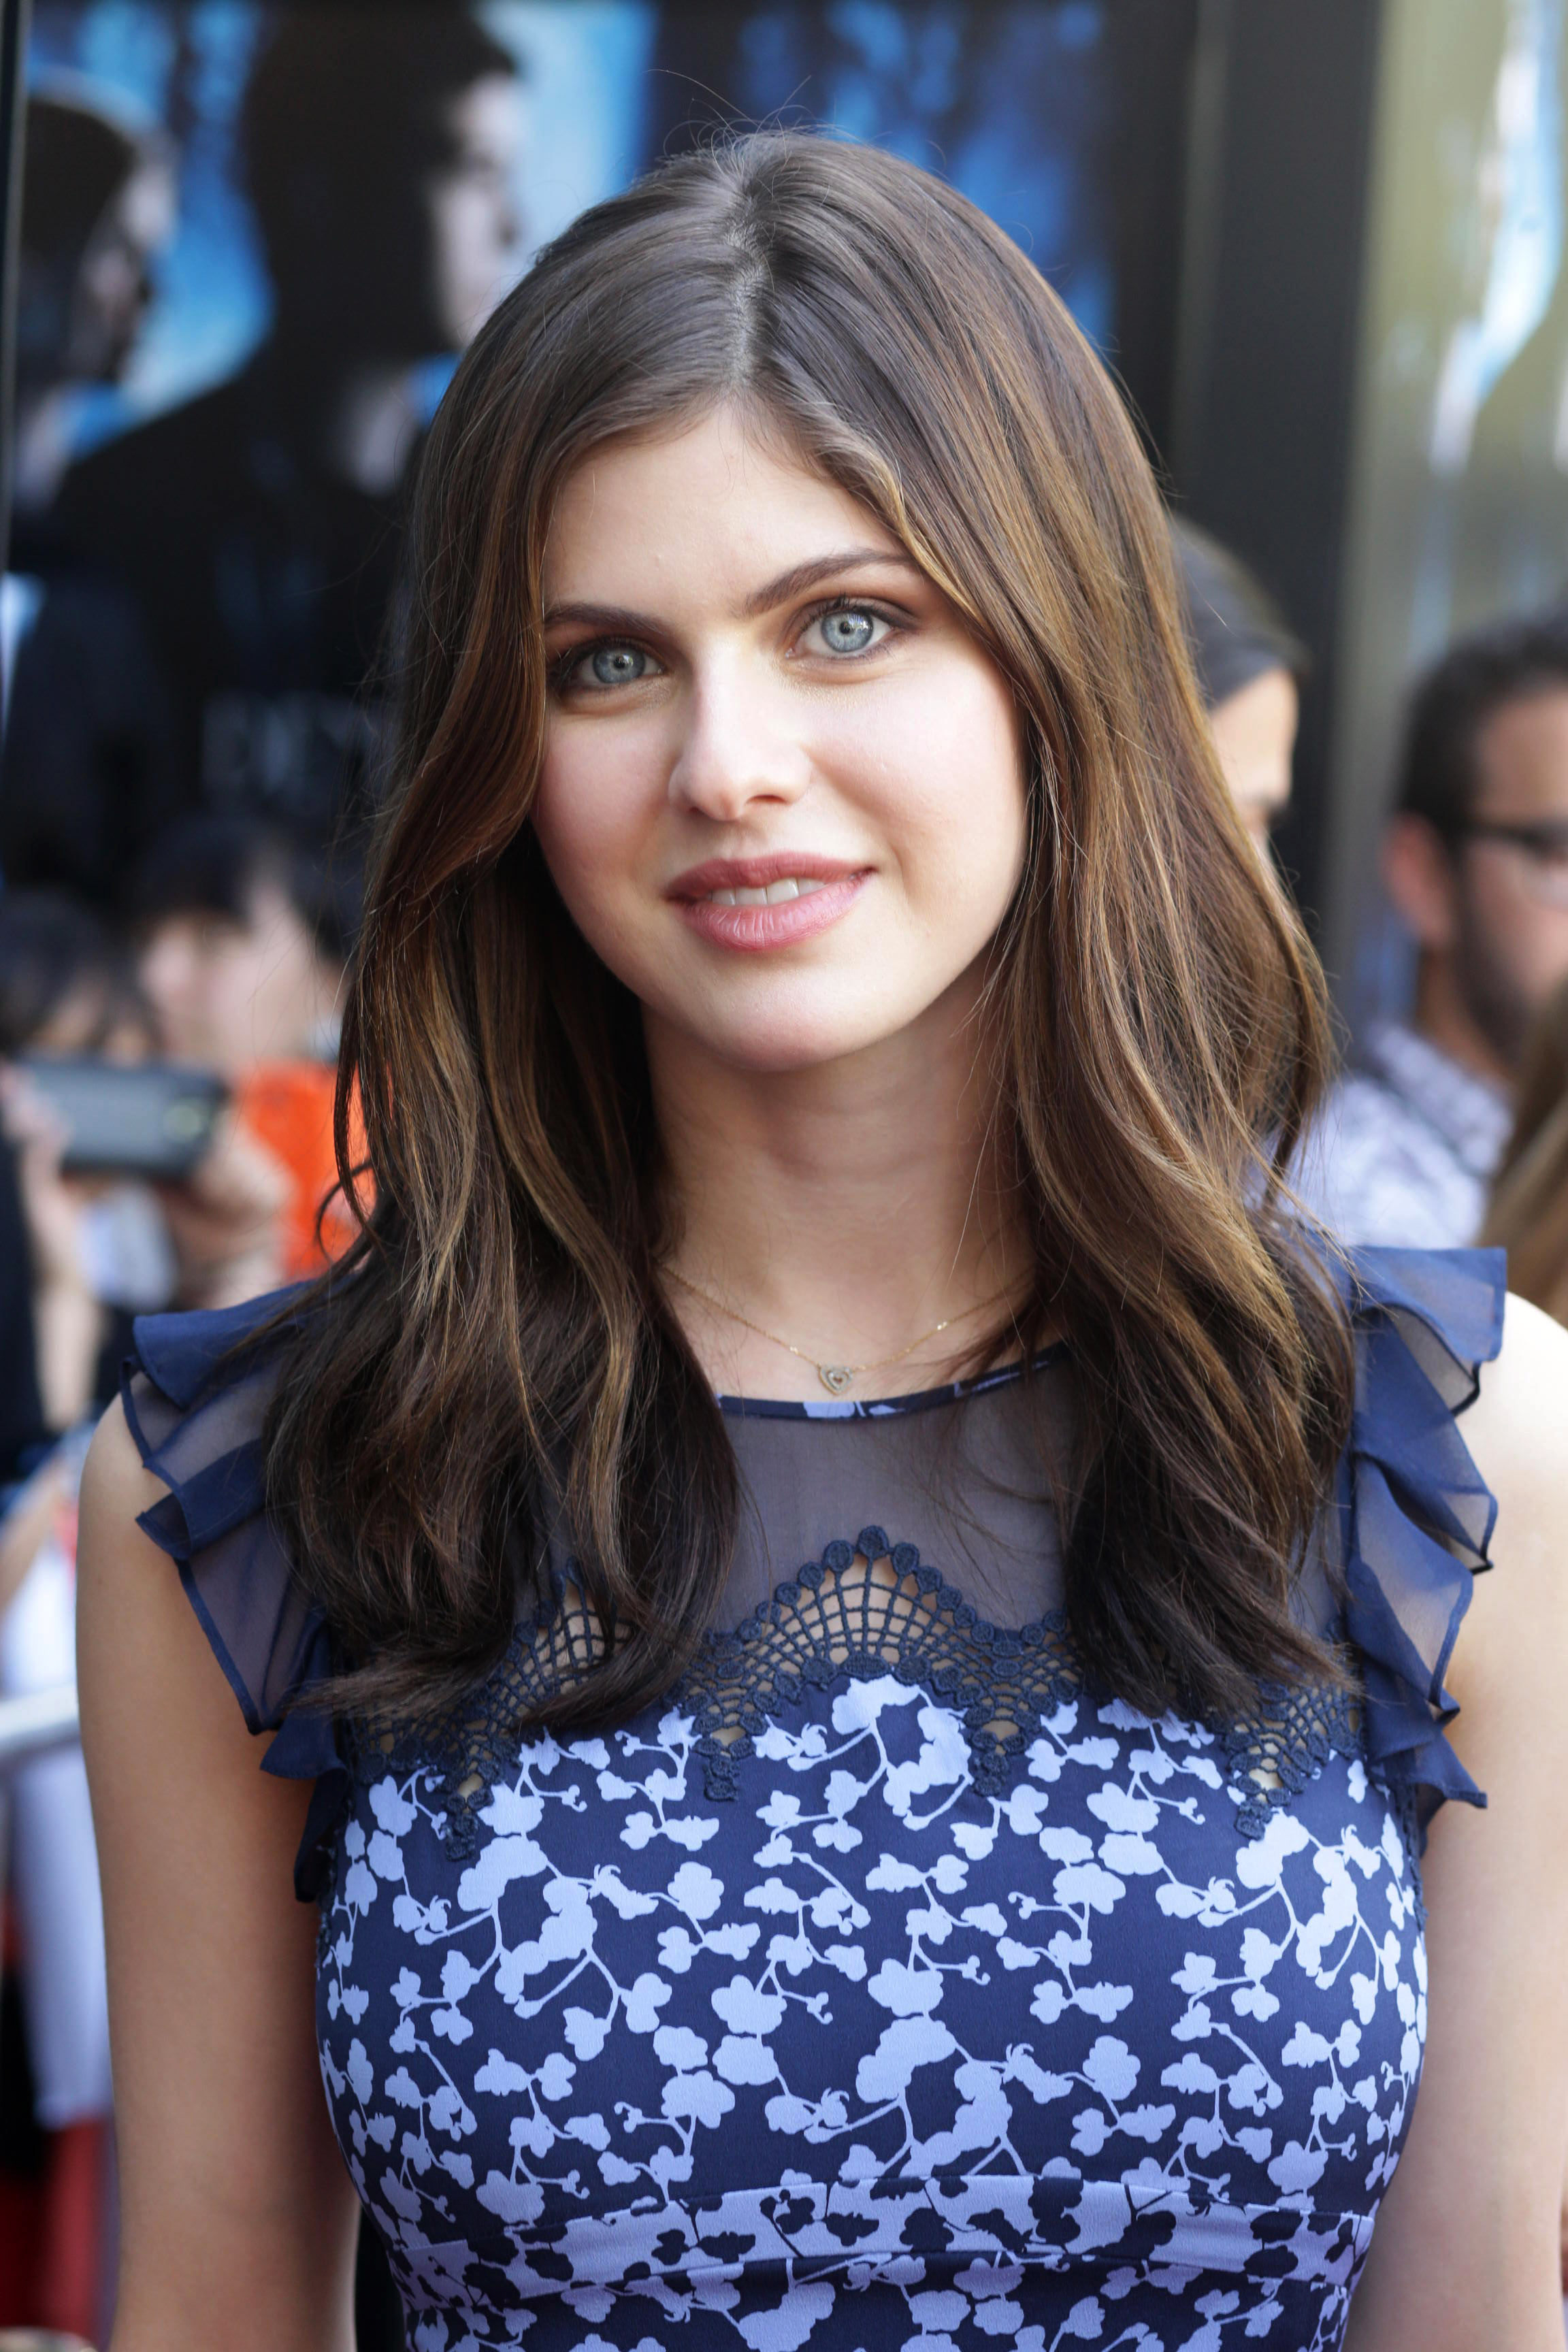 The 30 Best Alexandra Daddario Pictures Of All Time  The 30 Best Ale...